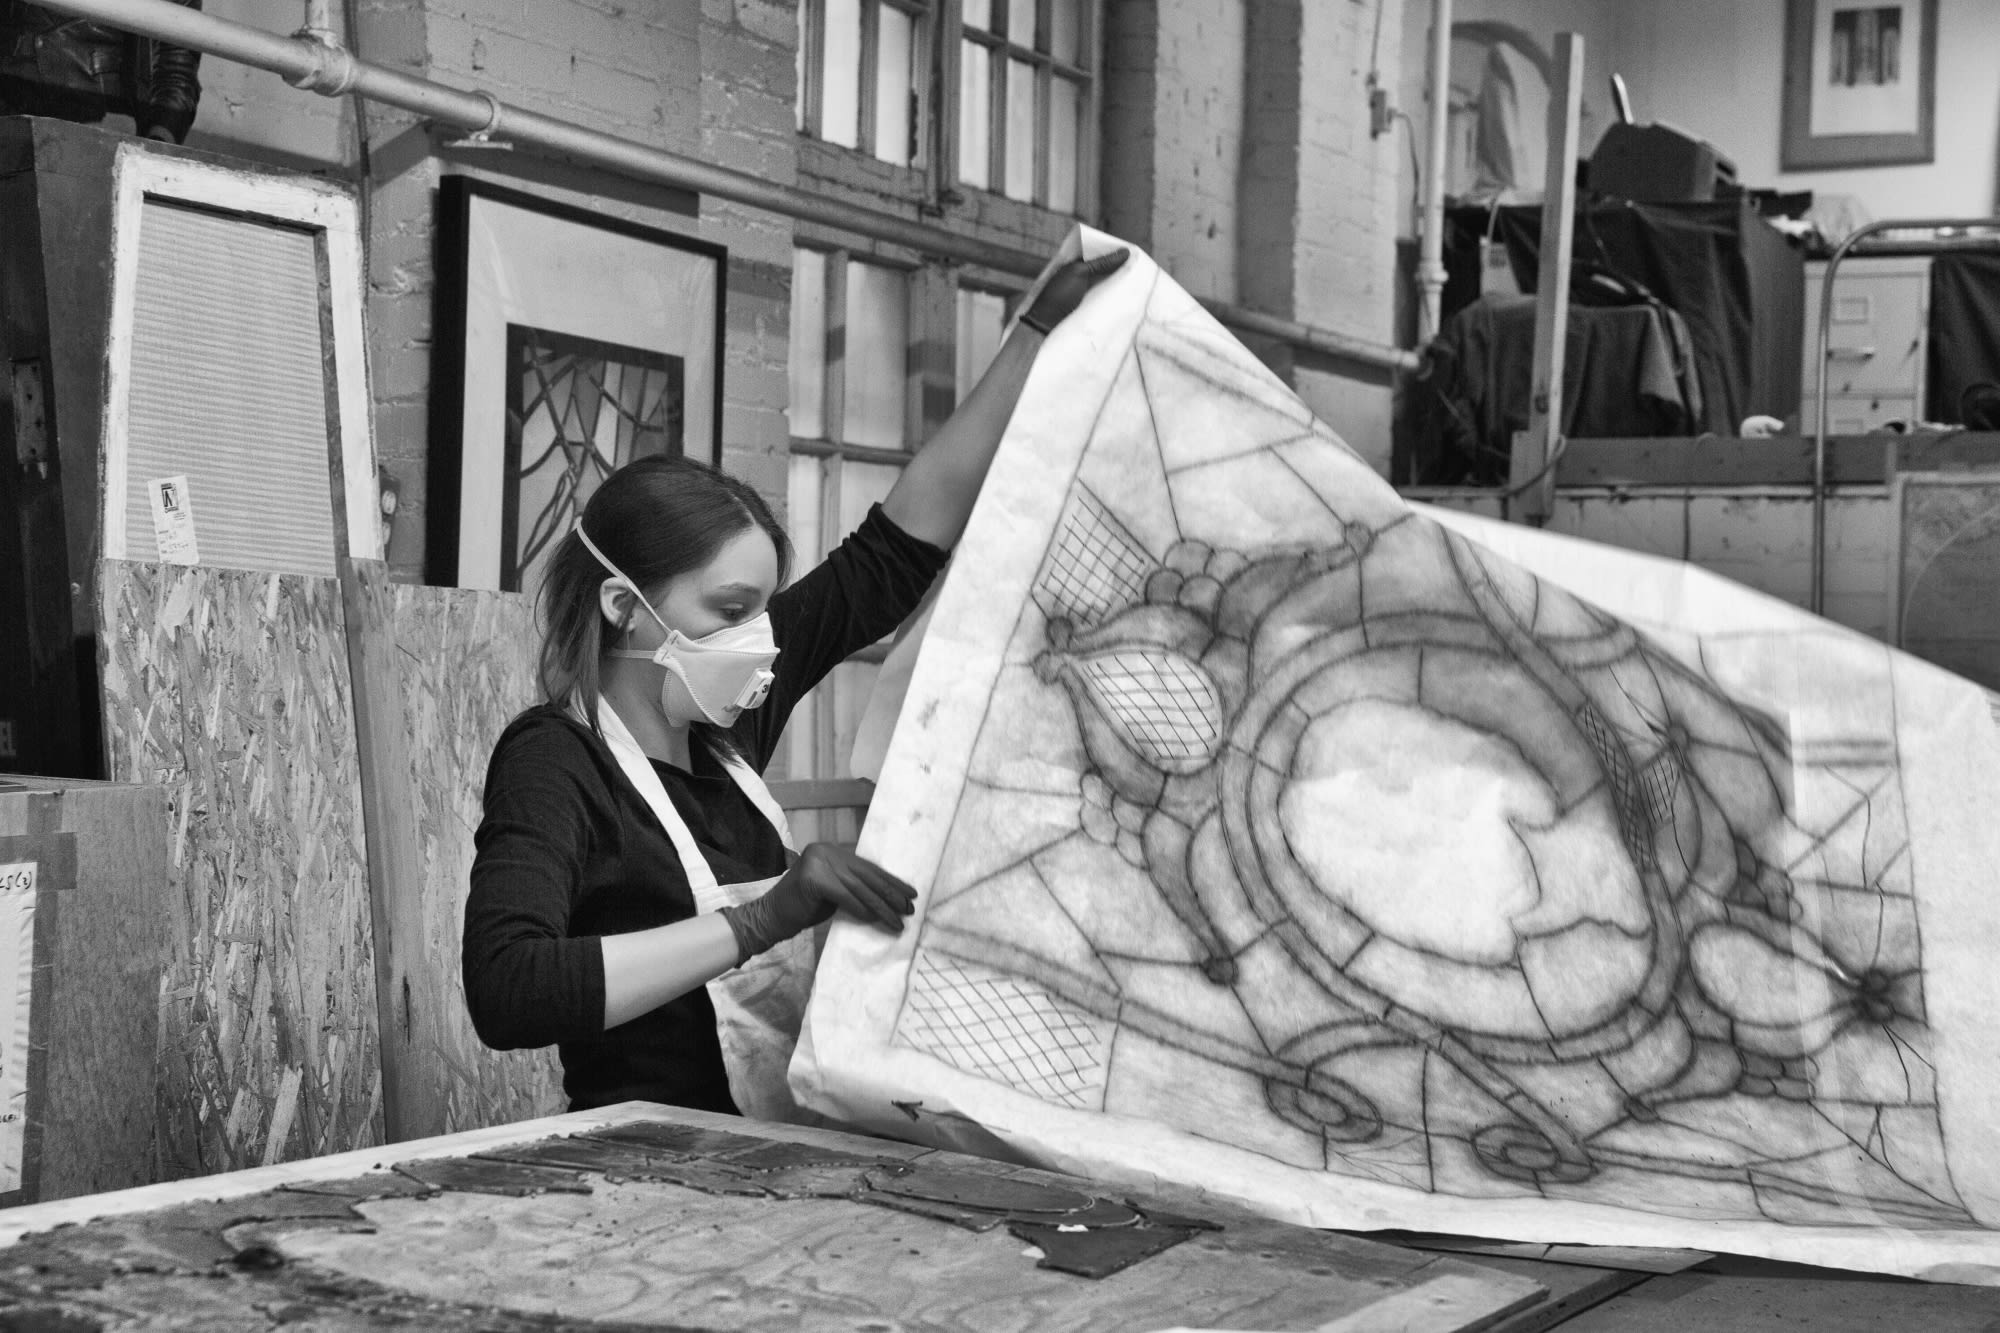 To keep track of all of the stained-glass pieces, lead tracings were made for each and every window.